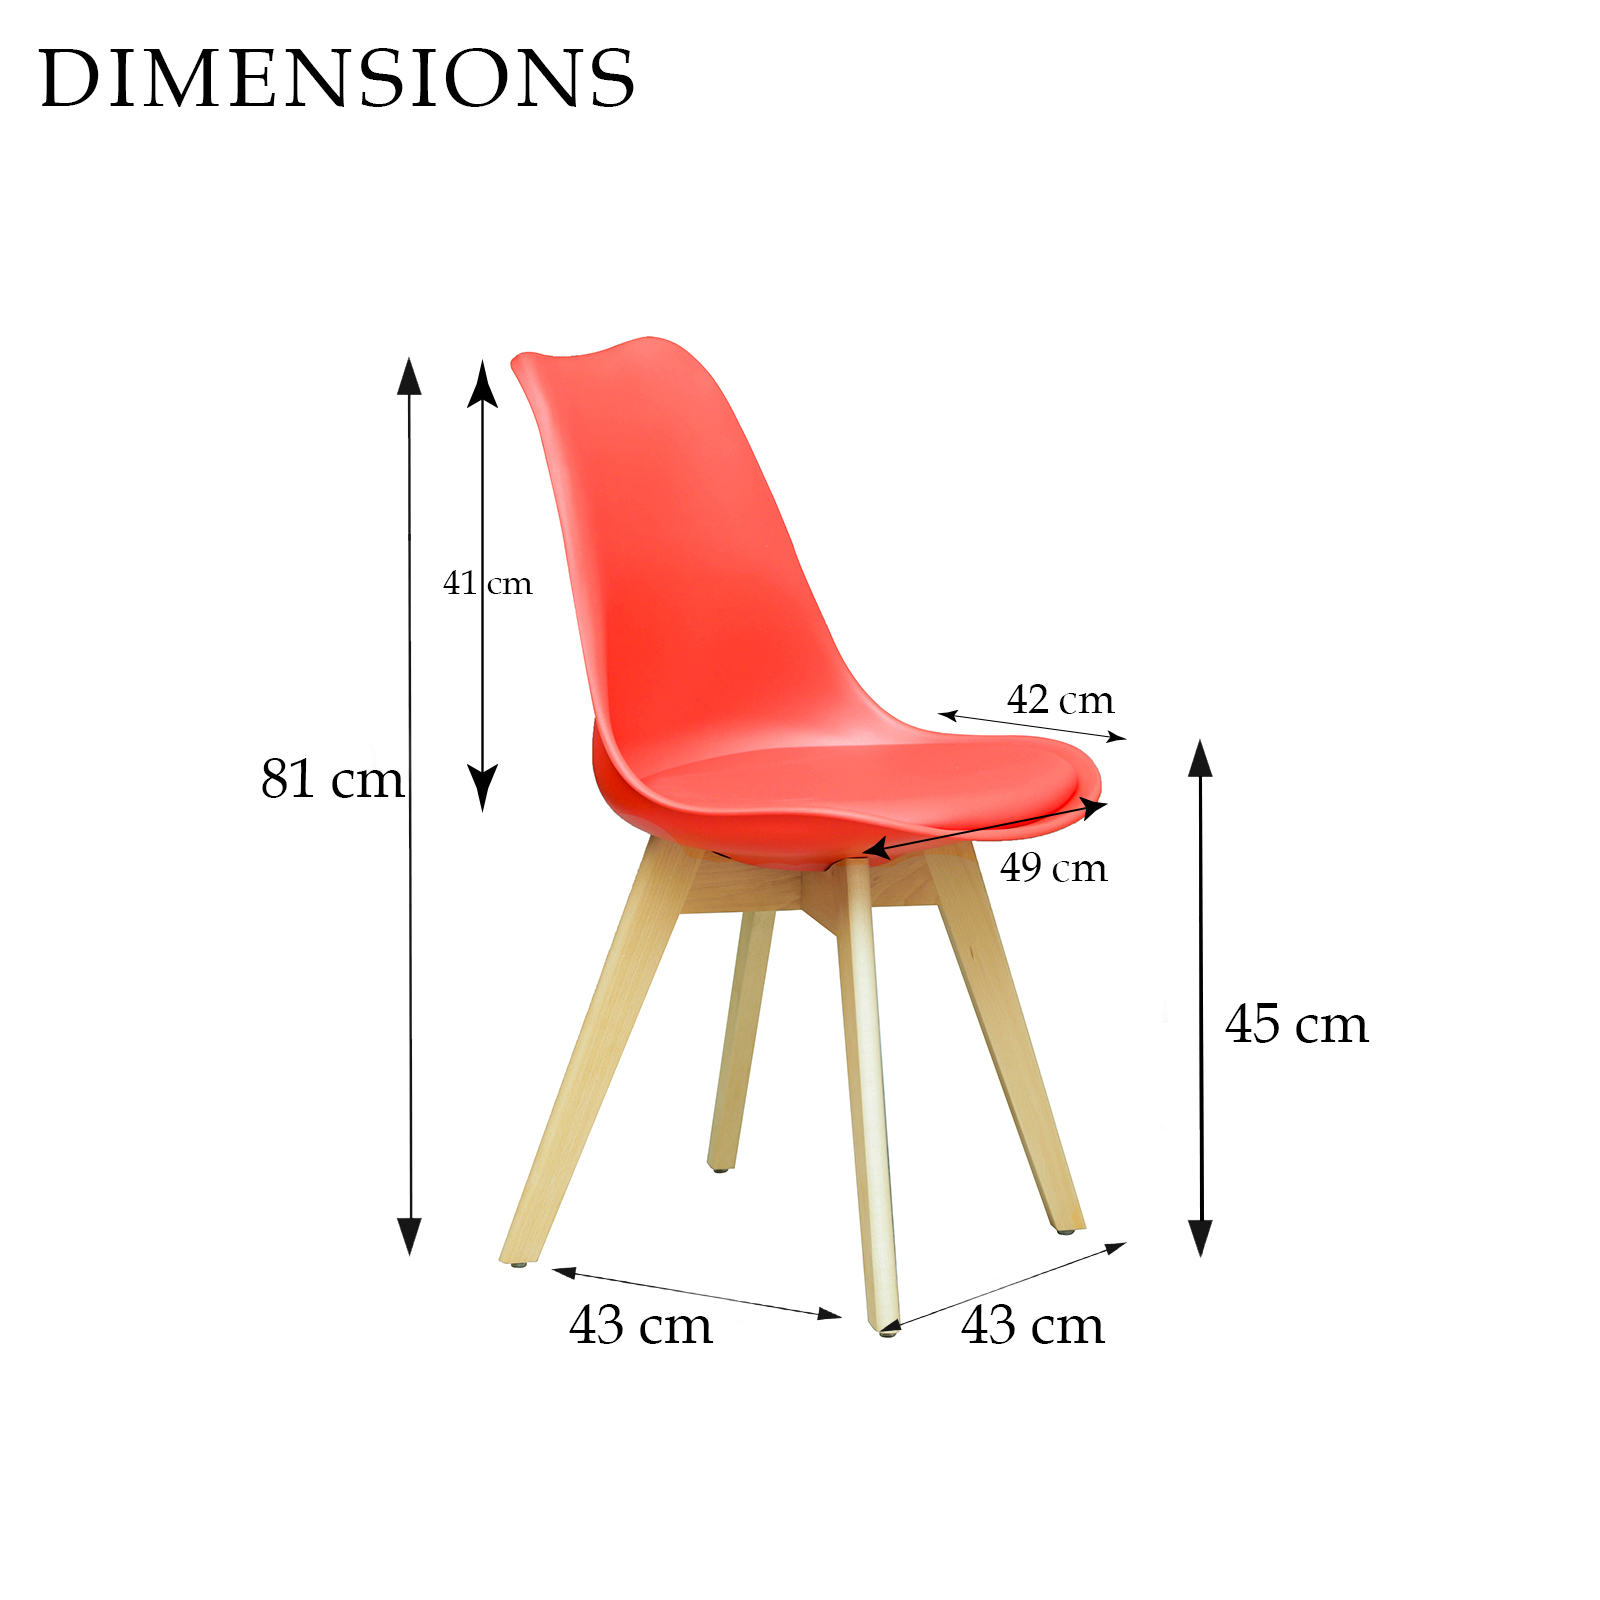 City Medium Dining Table 4 x Replica Eames Sisly ABS  : Sisly Red dining Chair Dimensions from www.ebay.com.au size 1600 x 1600 jpeg 310kB